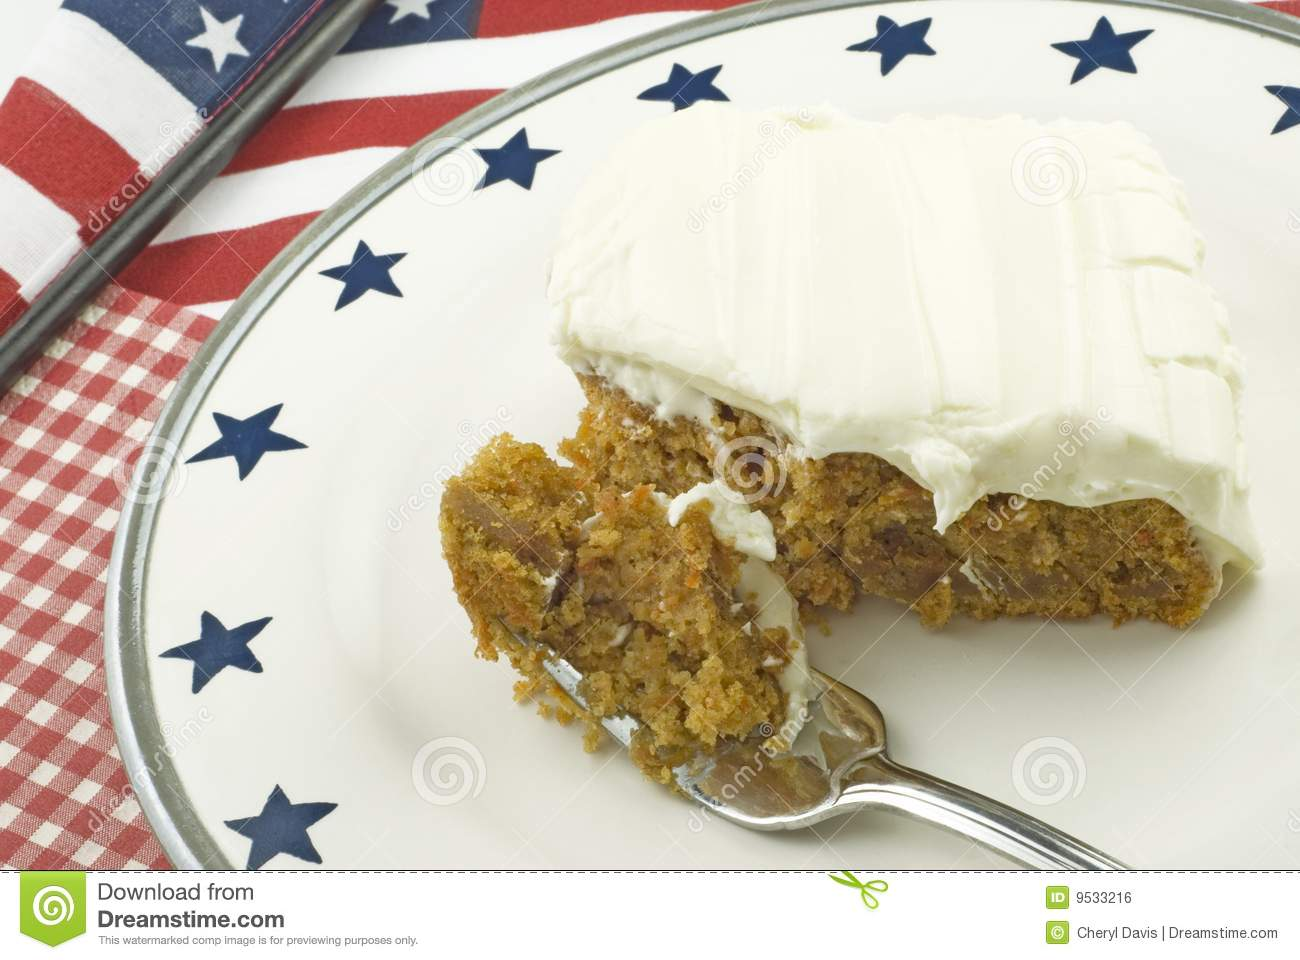 Carrot Cake with Patriotic Theme